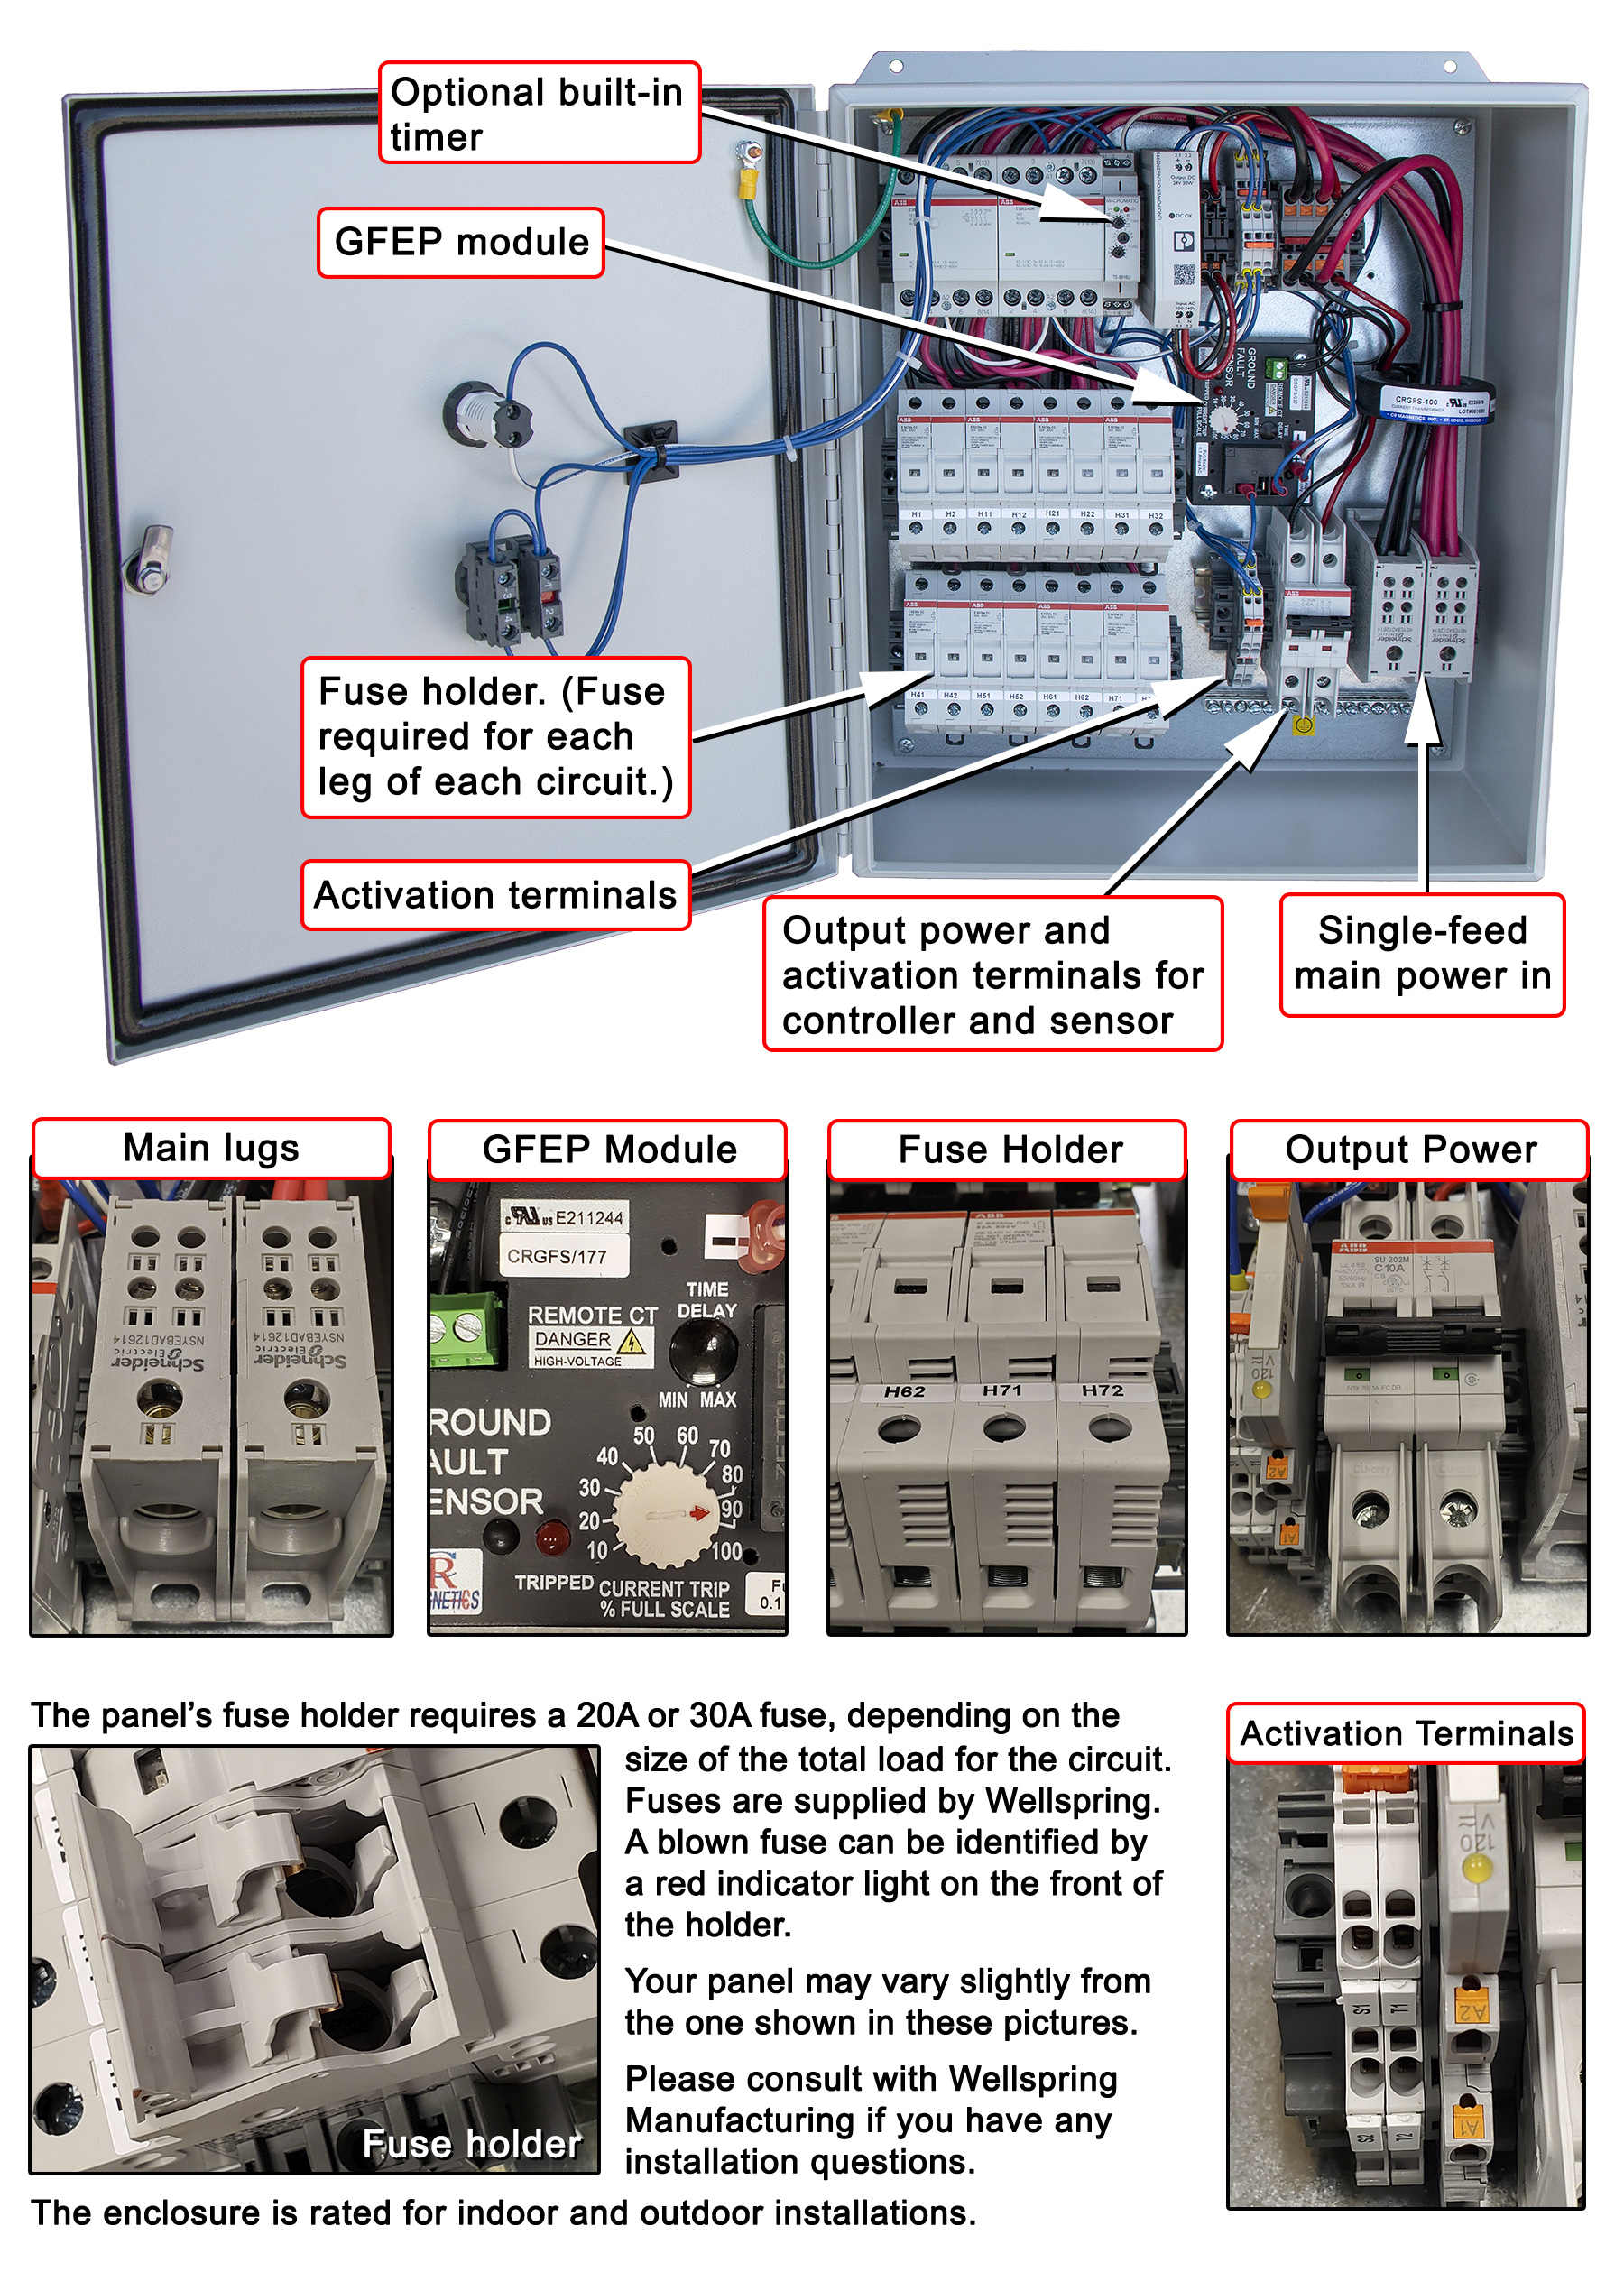 The new single-feed contactor panel with callouts